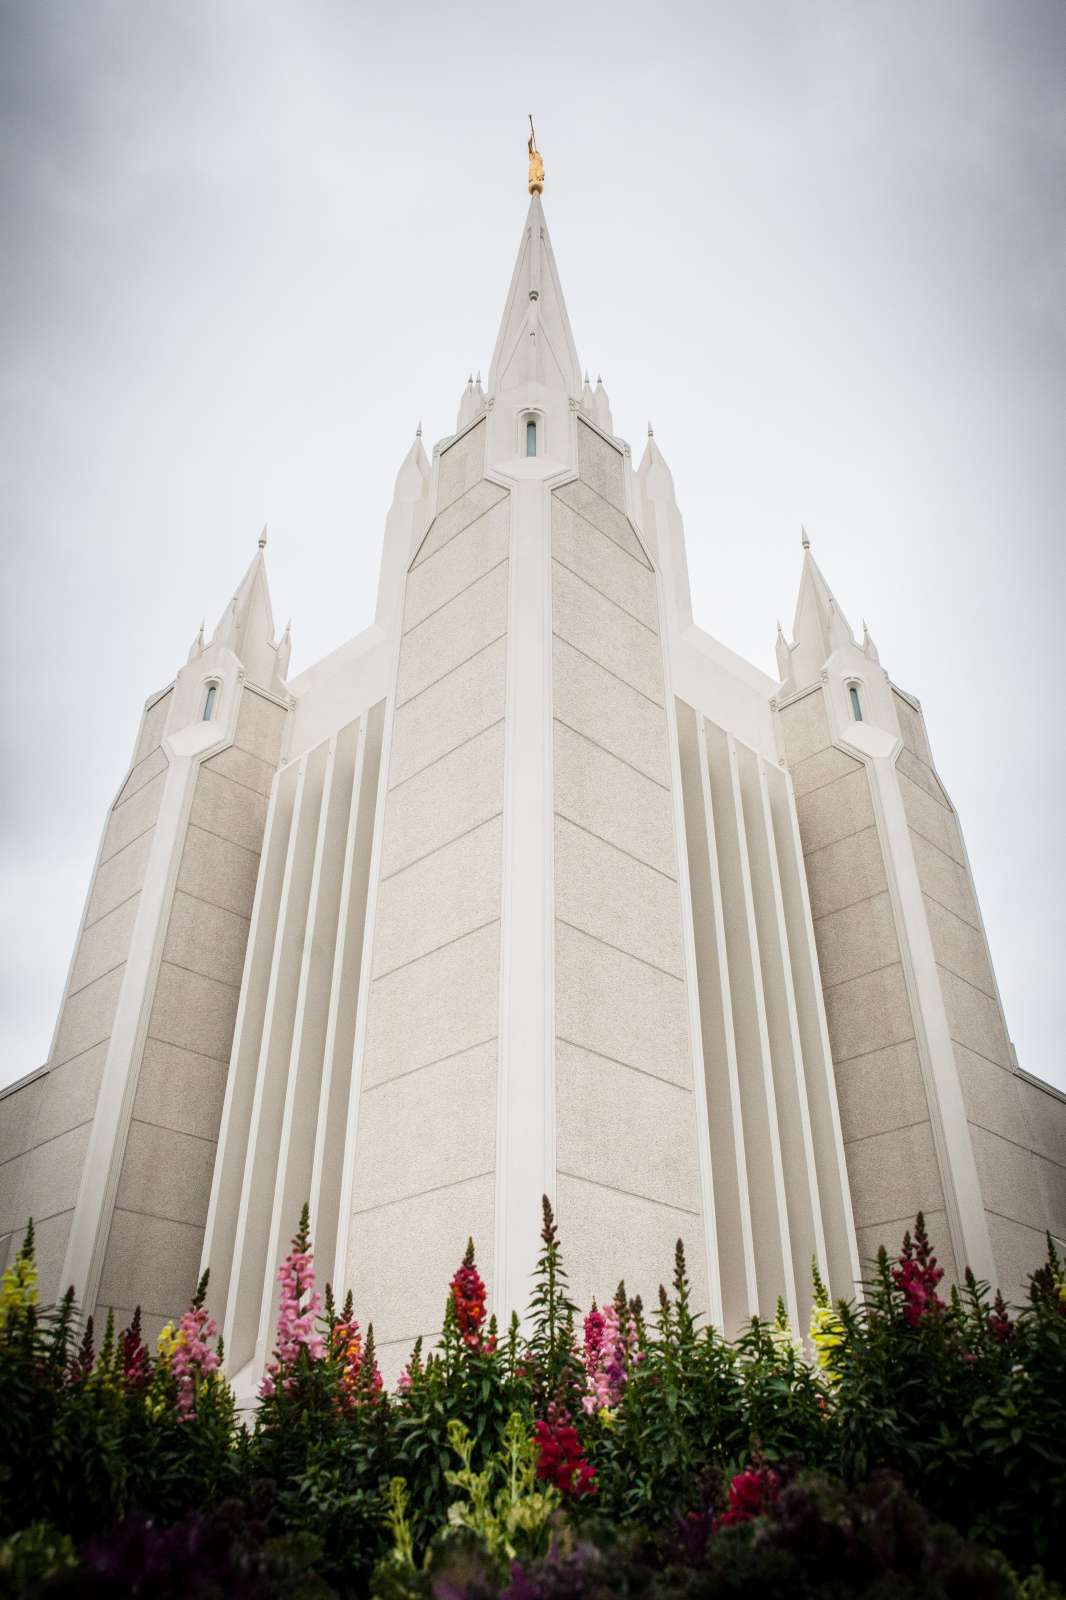 San diego california temple spires - Lds temple wallpaper ...